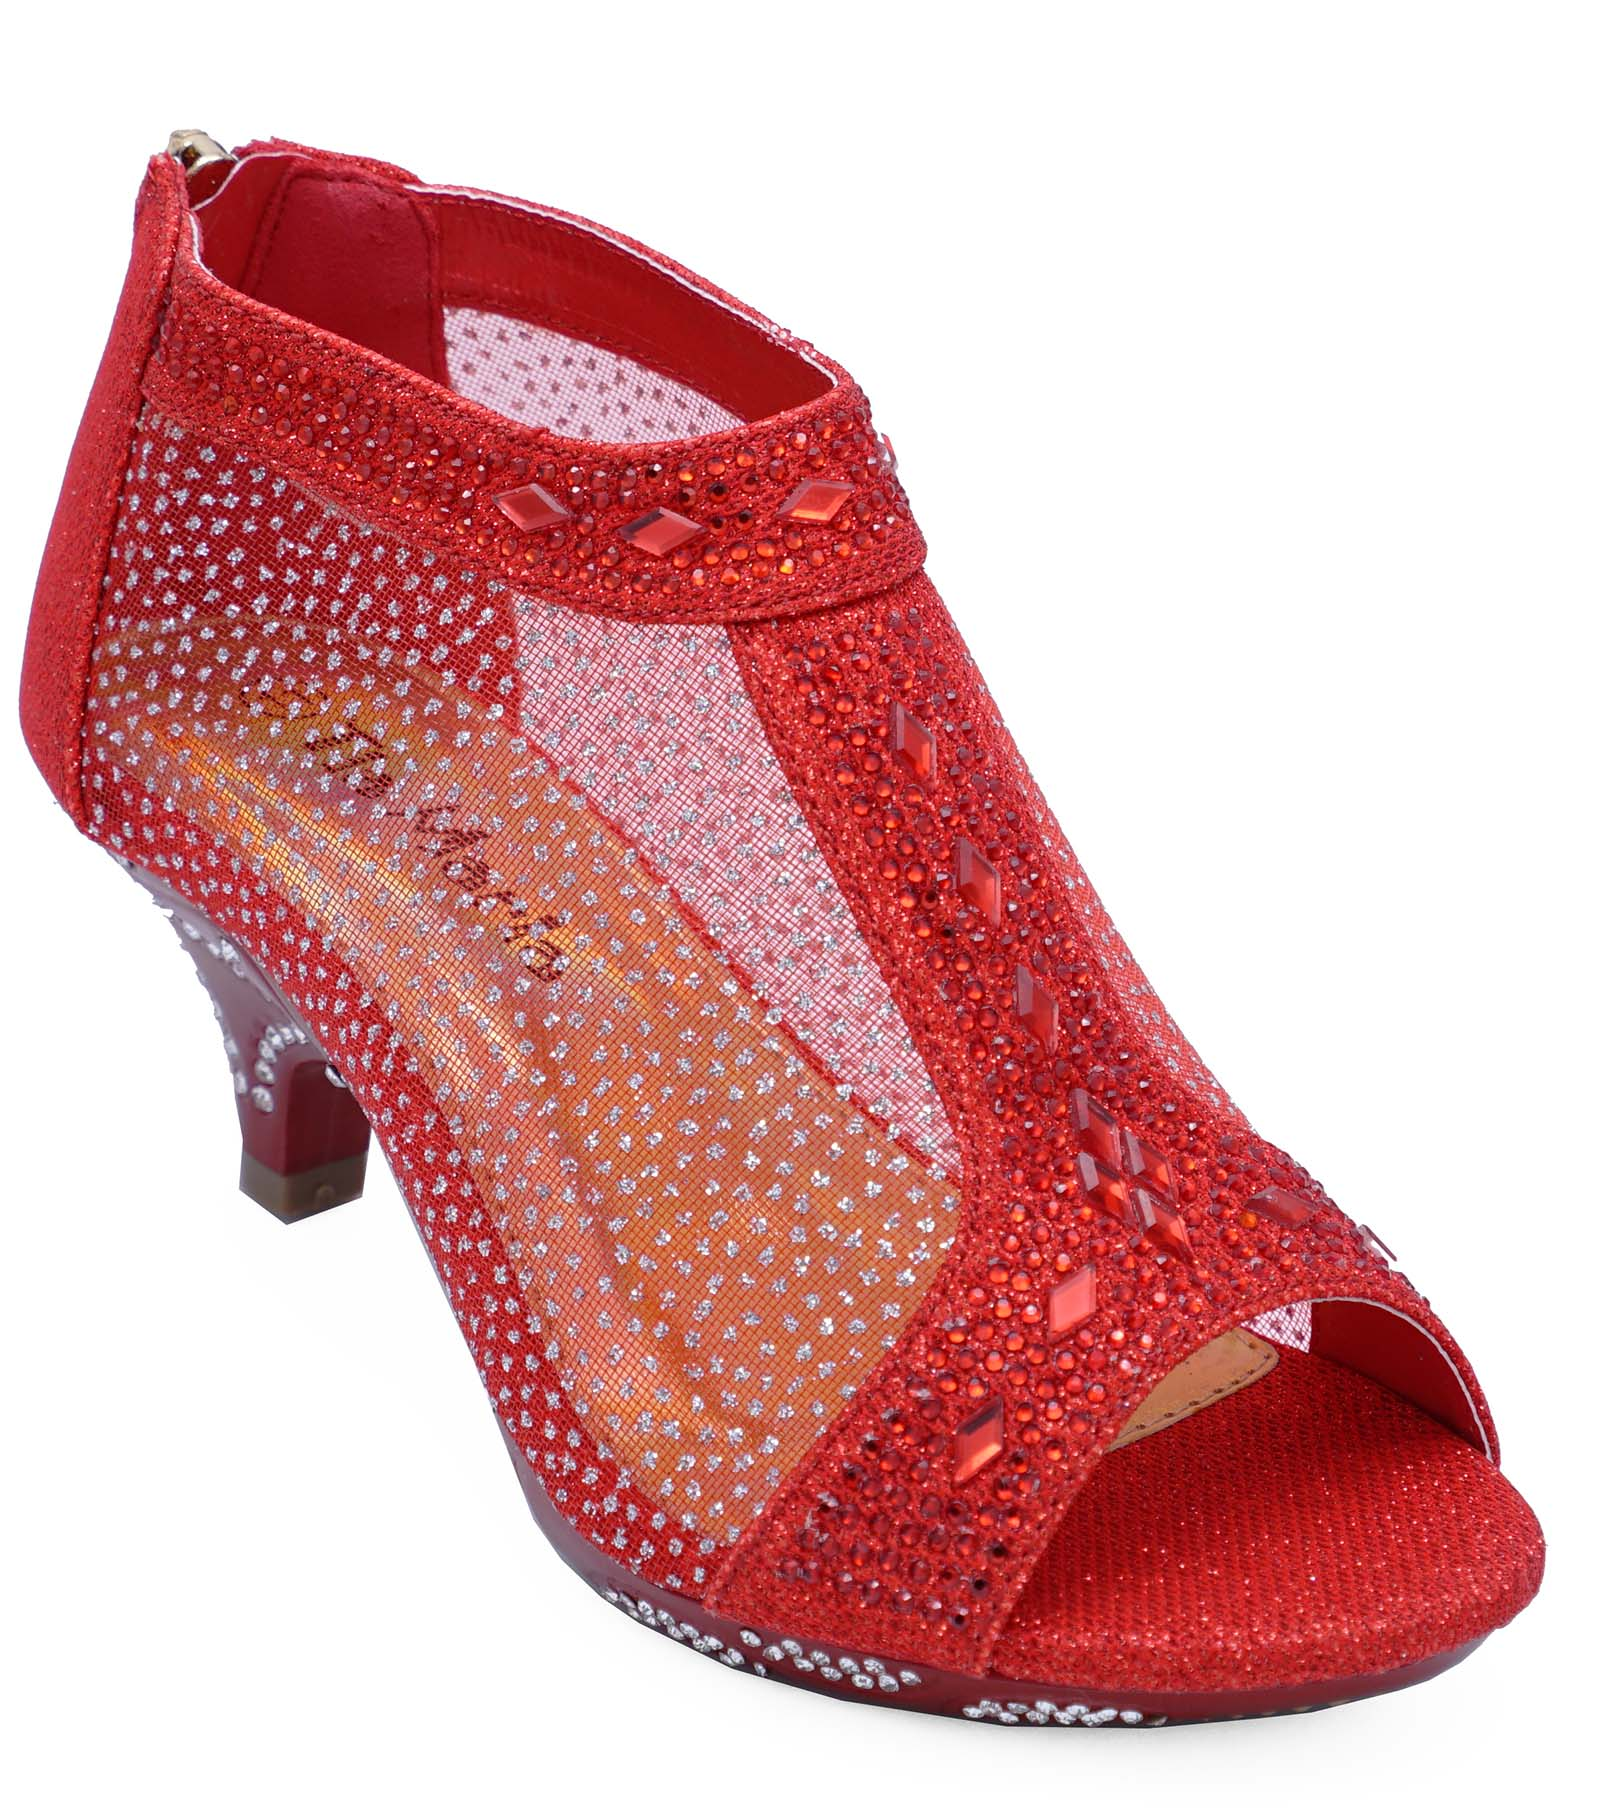 c899e3d93 Sentinel GIRLS KIDS RED PARTY ZIP KIDS LOW HEEL DIAMANTE OPEN-TOE BOOTS  SHOES 10-